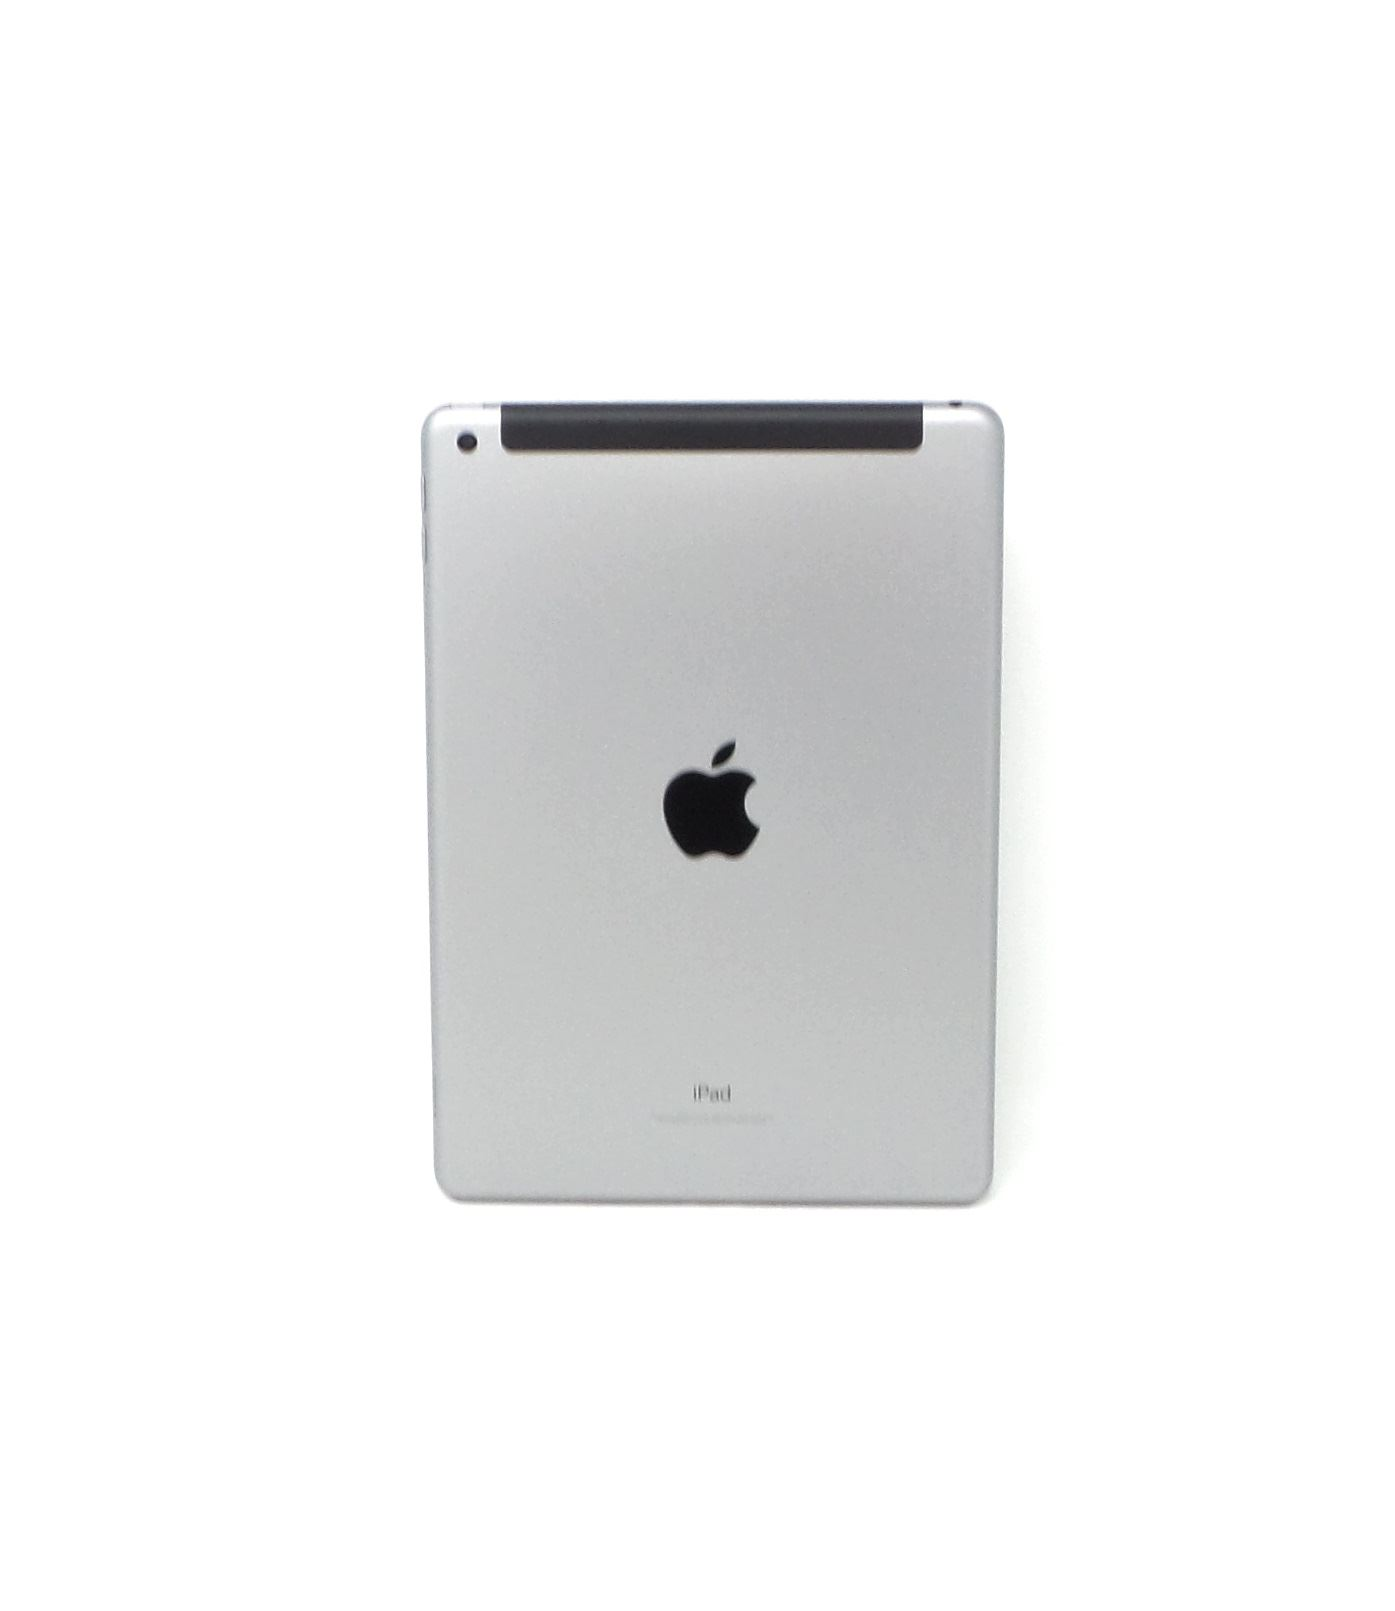 ipad 4g without contract